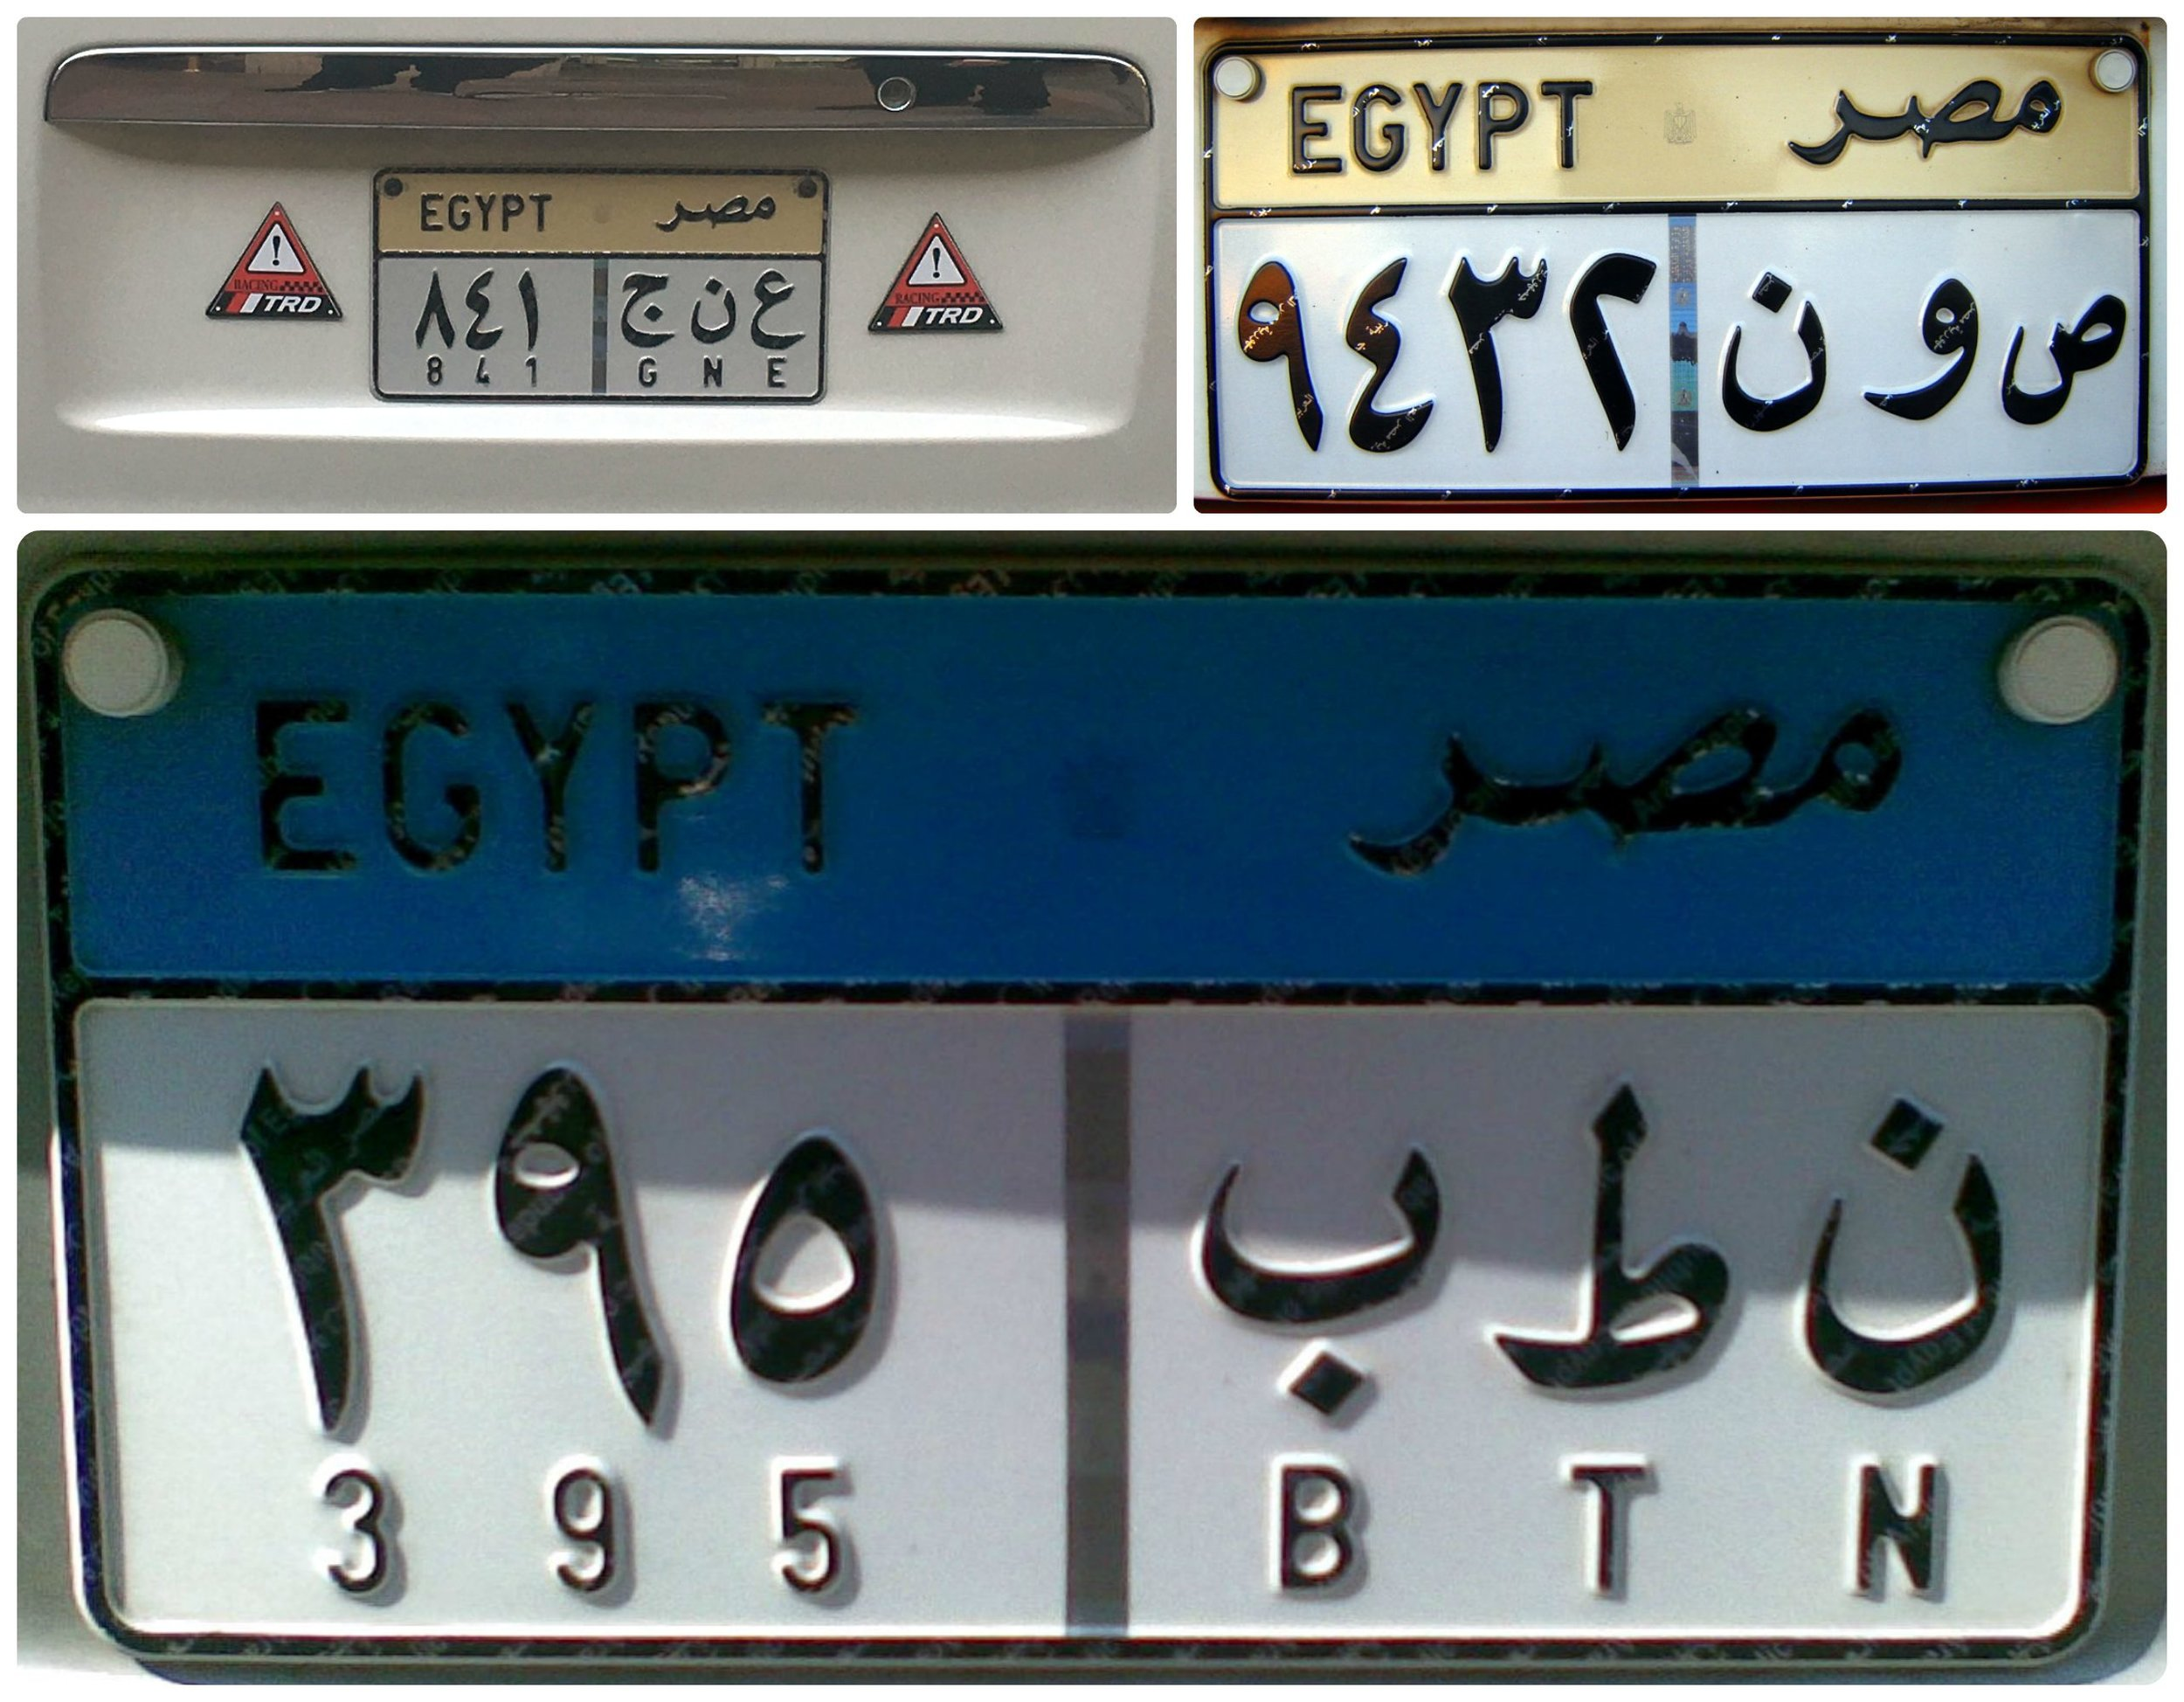 The numbers and letters on license plates are in Arabic. Some vehicles, but not all, also have the numbers and letters in western/English characters. Shannon actually learned her numbers in Arabic by reading license plates as we drove around Cairo.